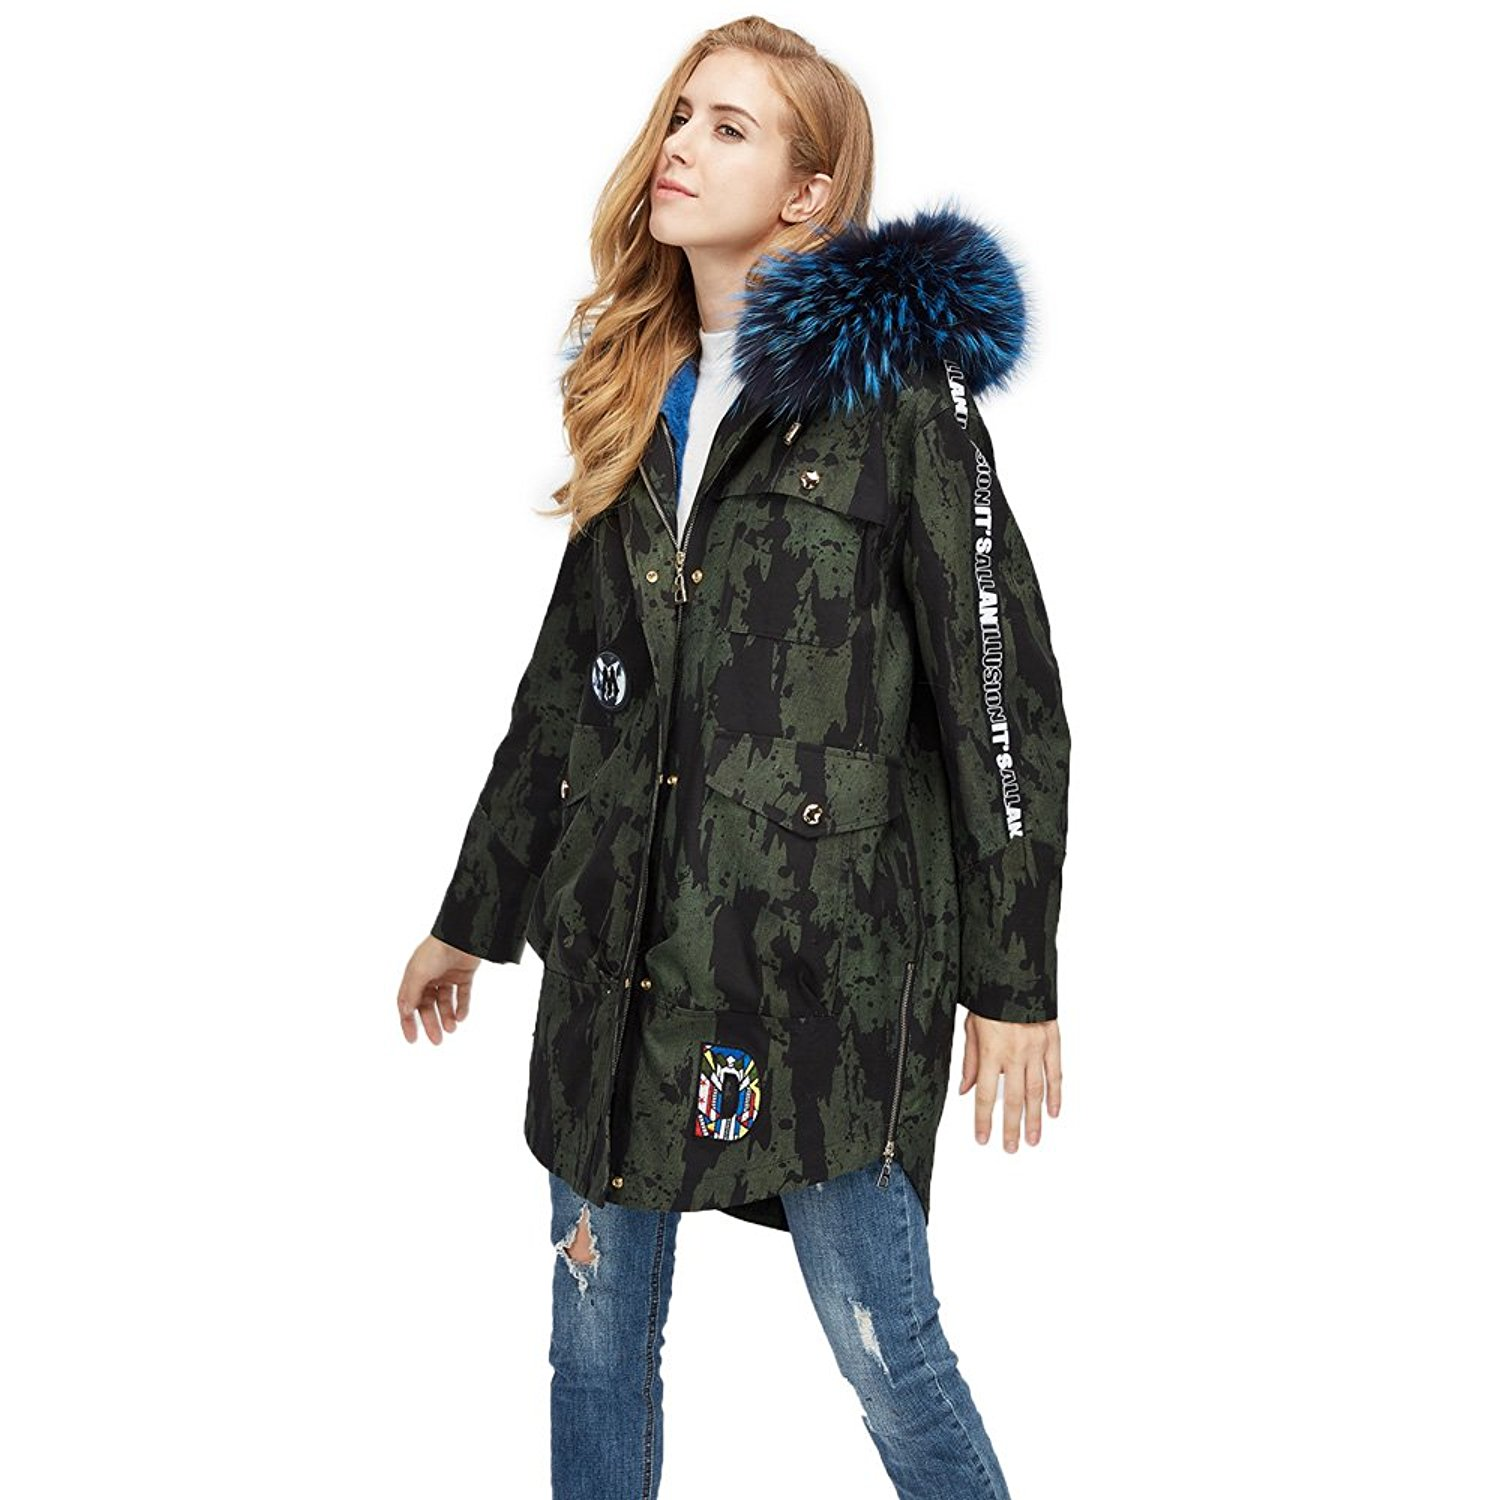 ee3f00e36f922 Get Quotations · MMFur Long Genuine Raccoon Fur Collar Parka Detachable  Rabbit Fur Liner Camouflage Coat with Hood